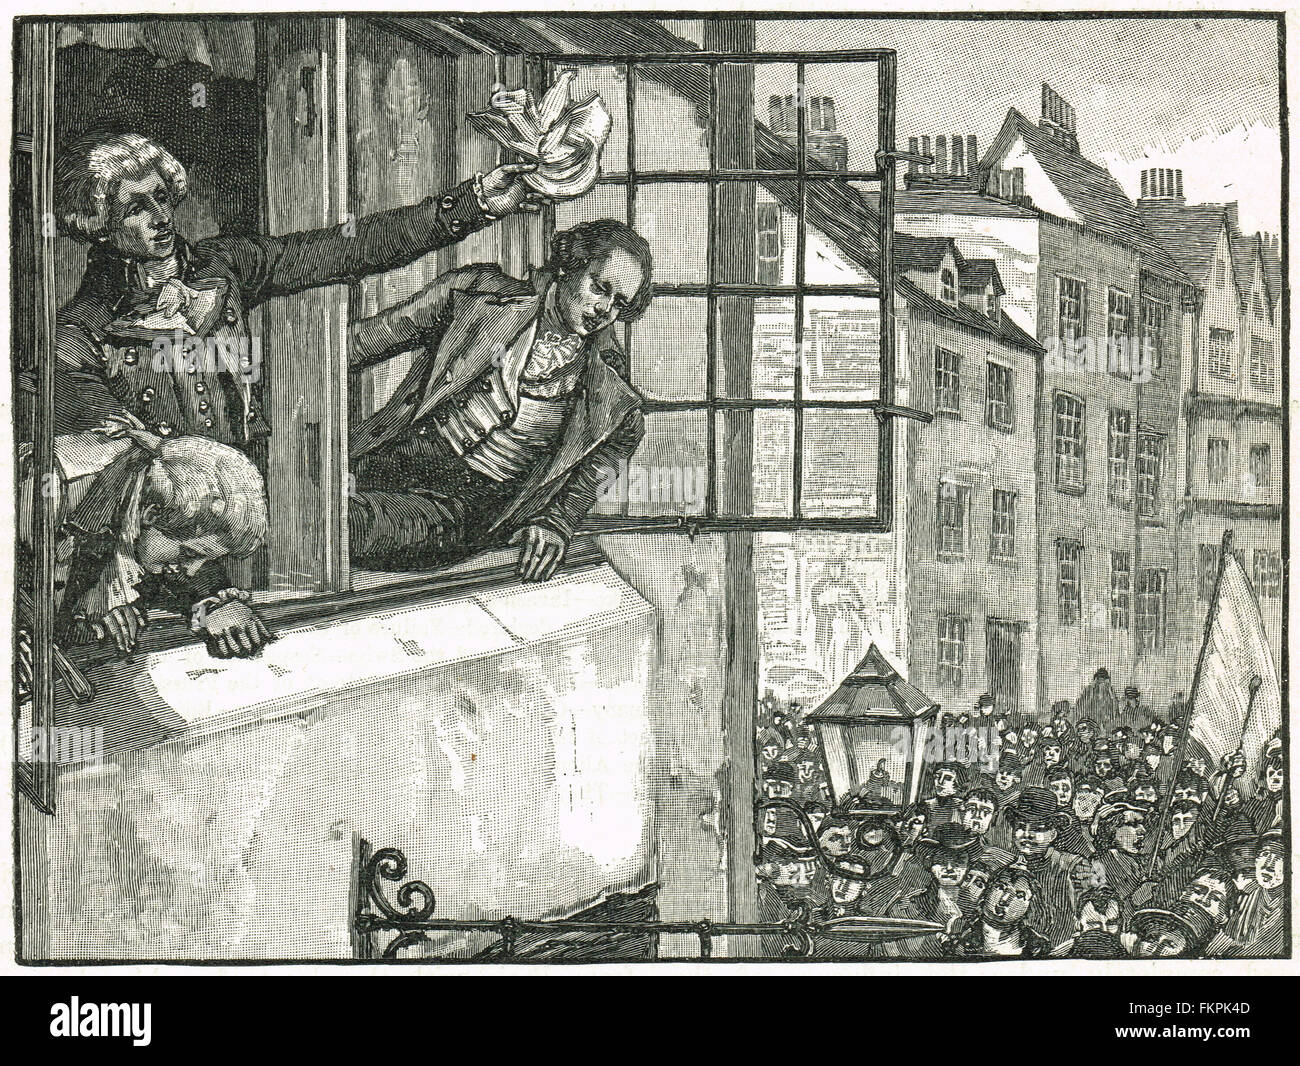 The Priestley Riots in Birmingham 1791 - Stock Image